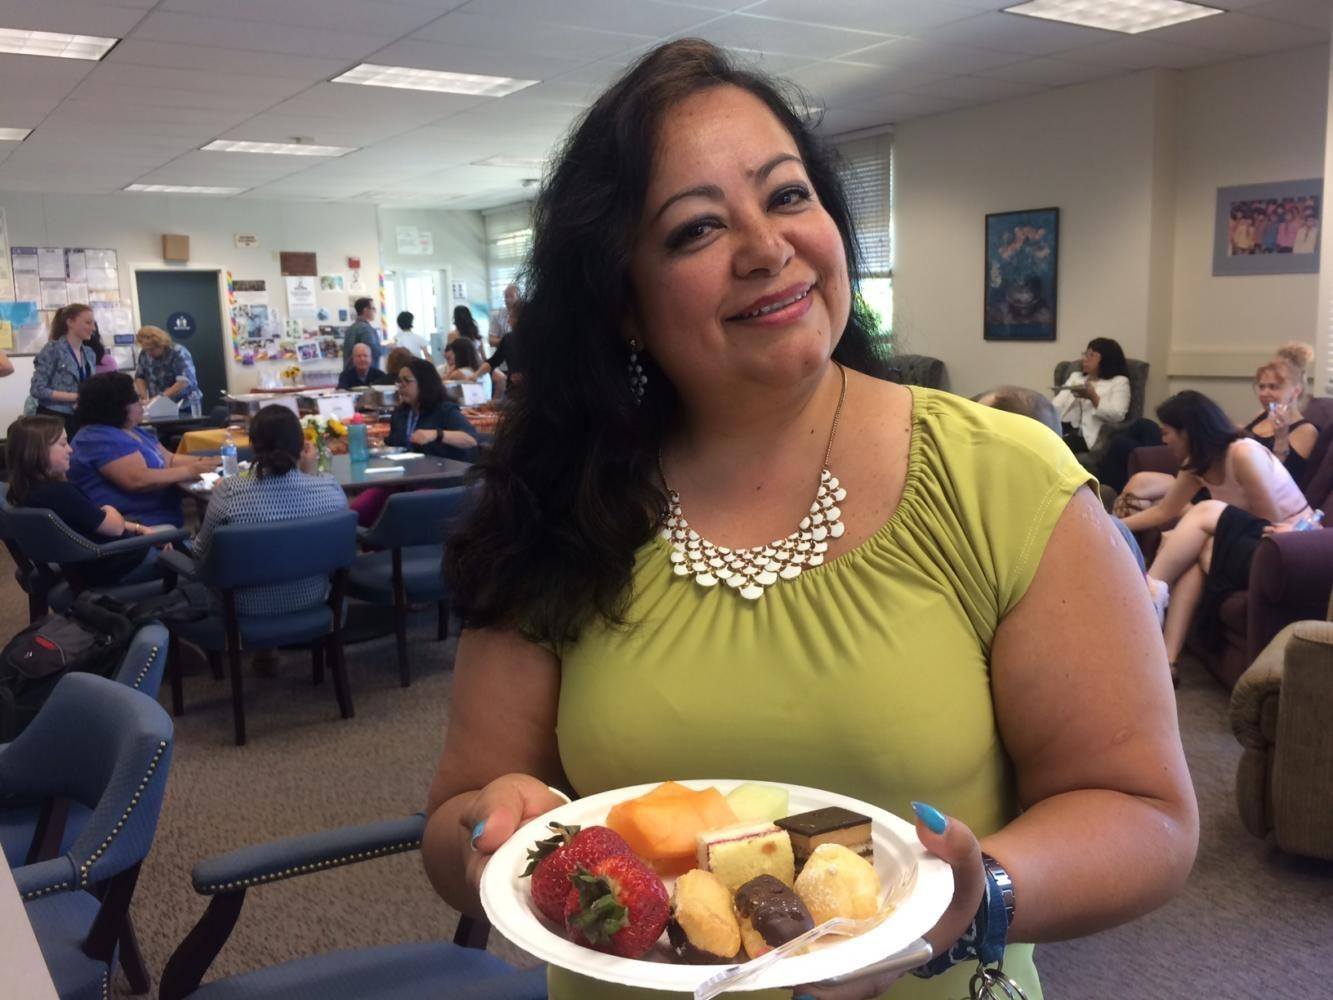 Rosa+Argaluza%2C+a+Spanish+teacher%2C+gets+food+in+the+Teachers%27+Lounge+during+the+Vivace+Luncheon+for+Teacher+Appreciation+Week.